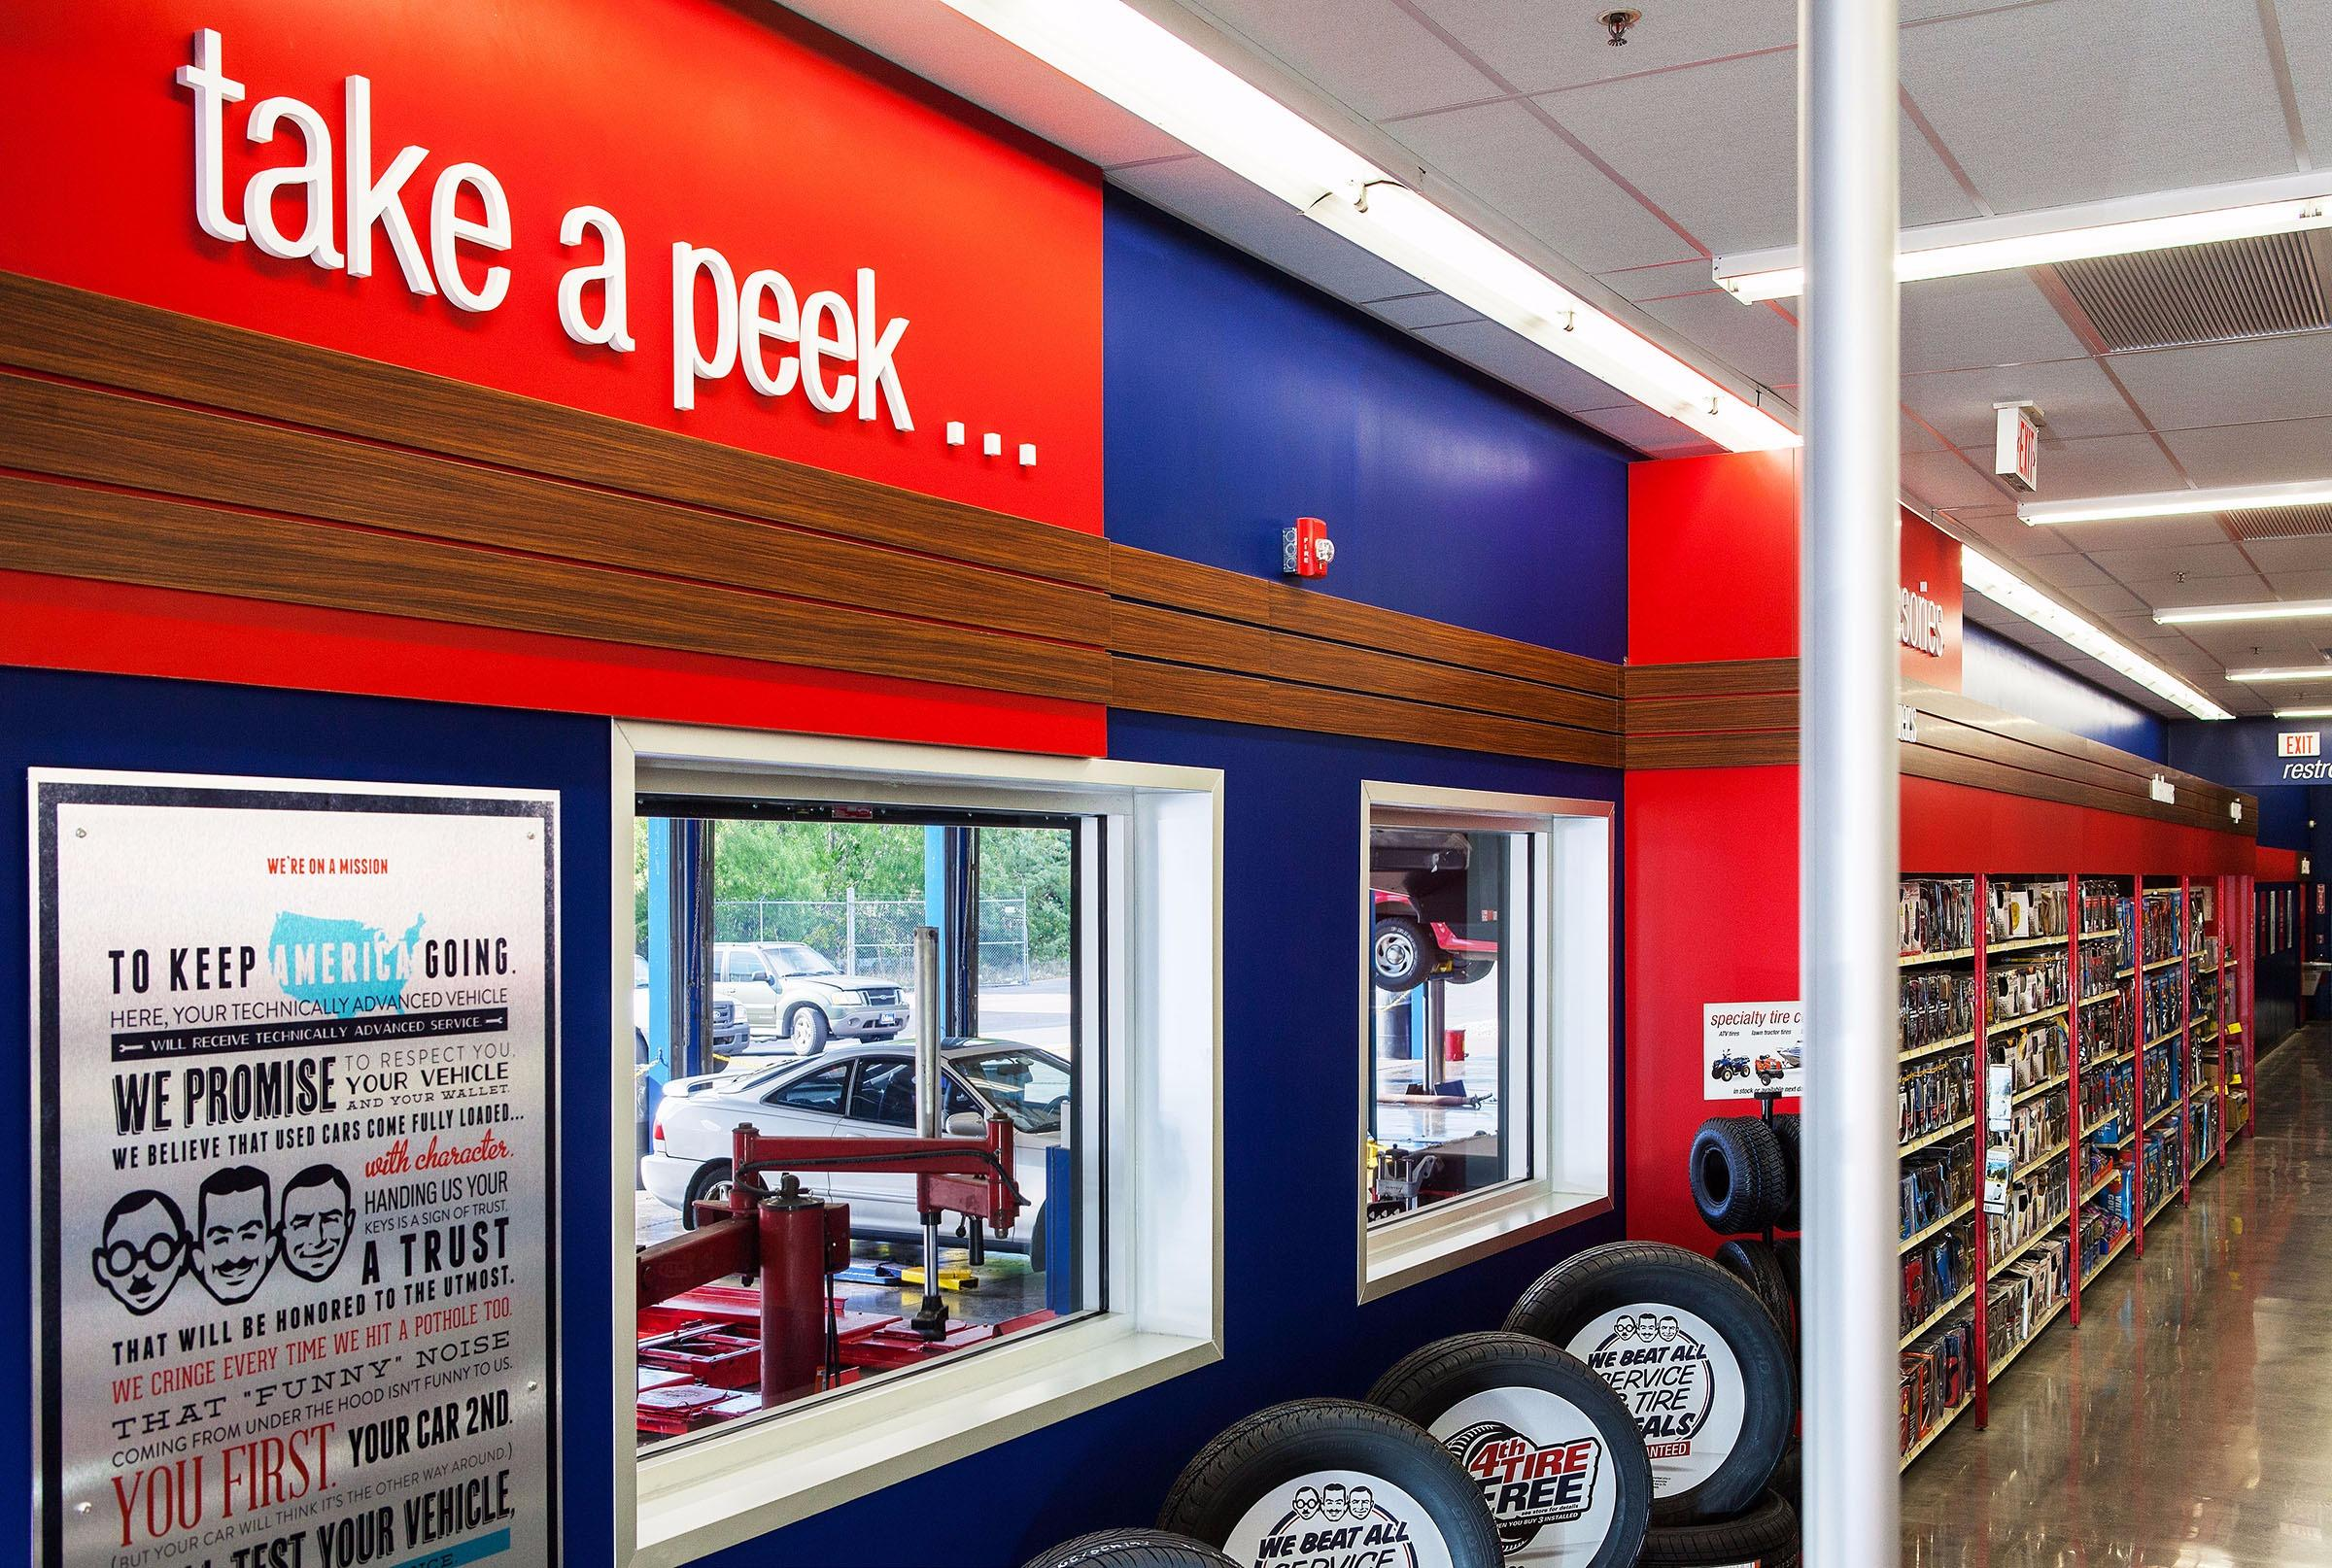 Pep Boys Tires, Parts And Auto Services With more hours and more techs, Pep Boys gets you in (and out) fast. Check out some of our most popular services.